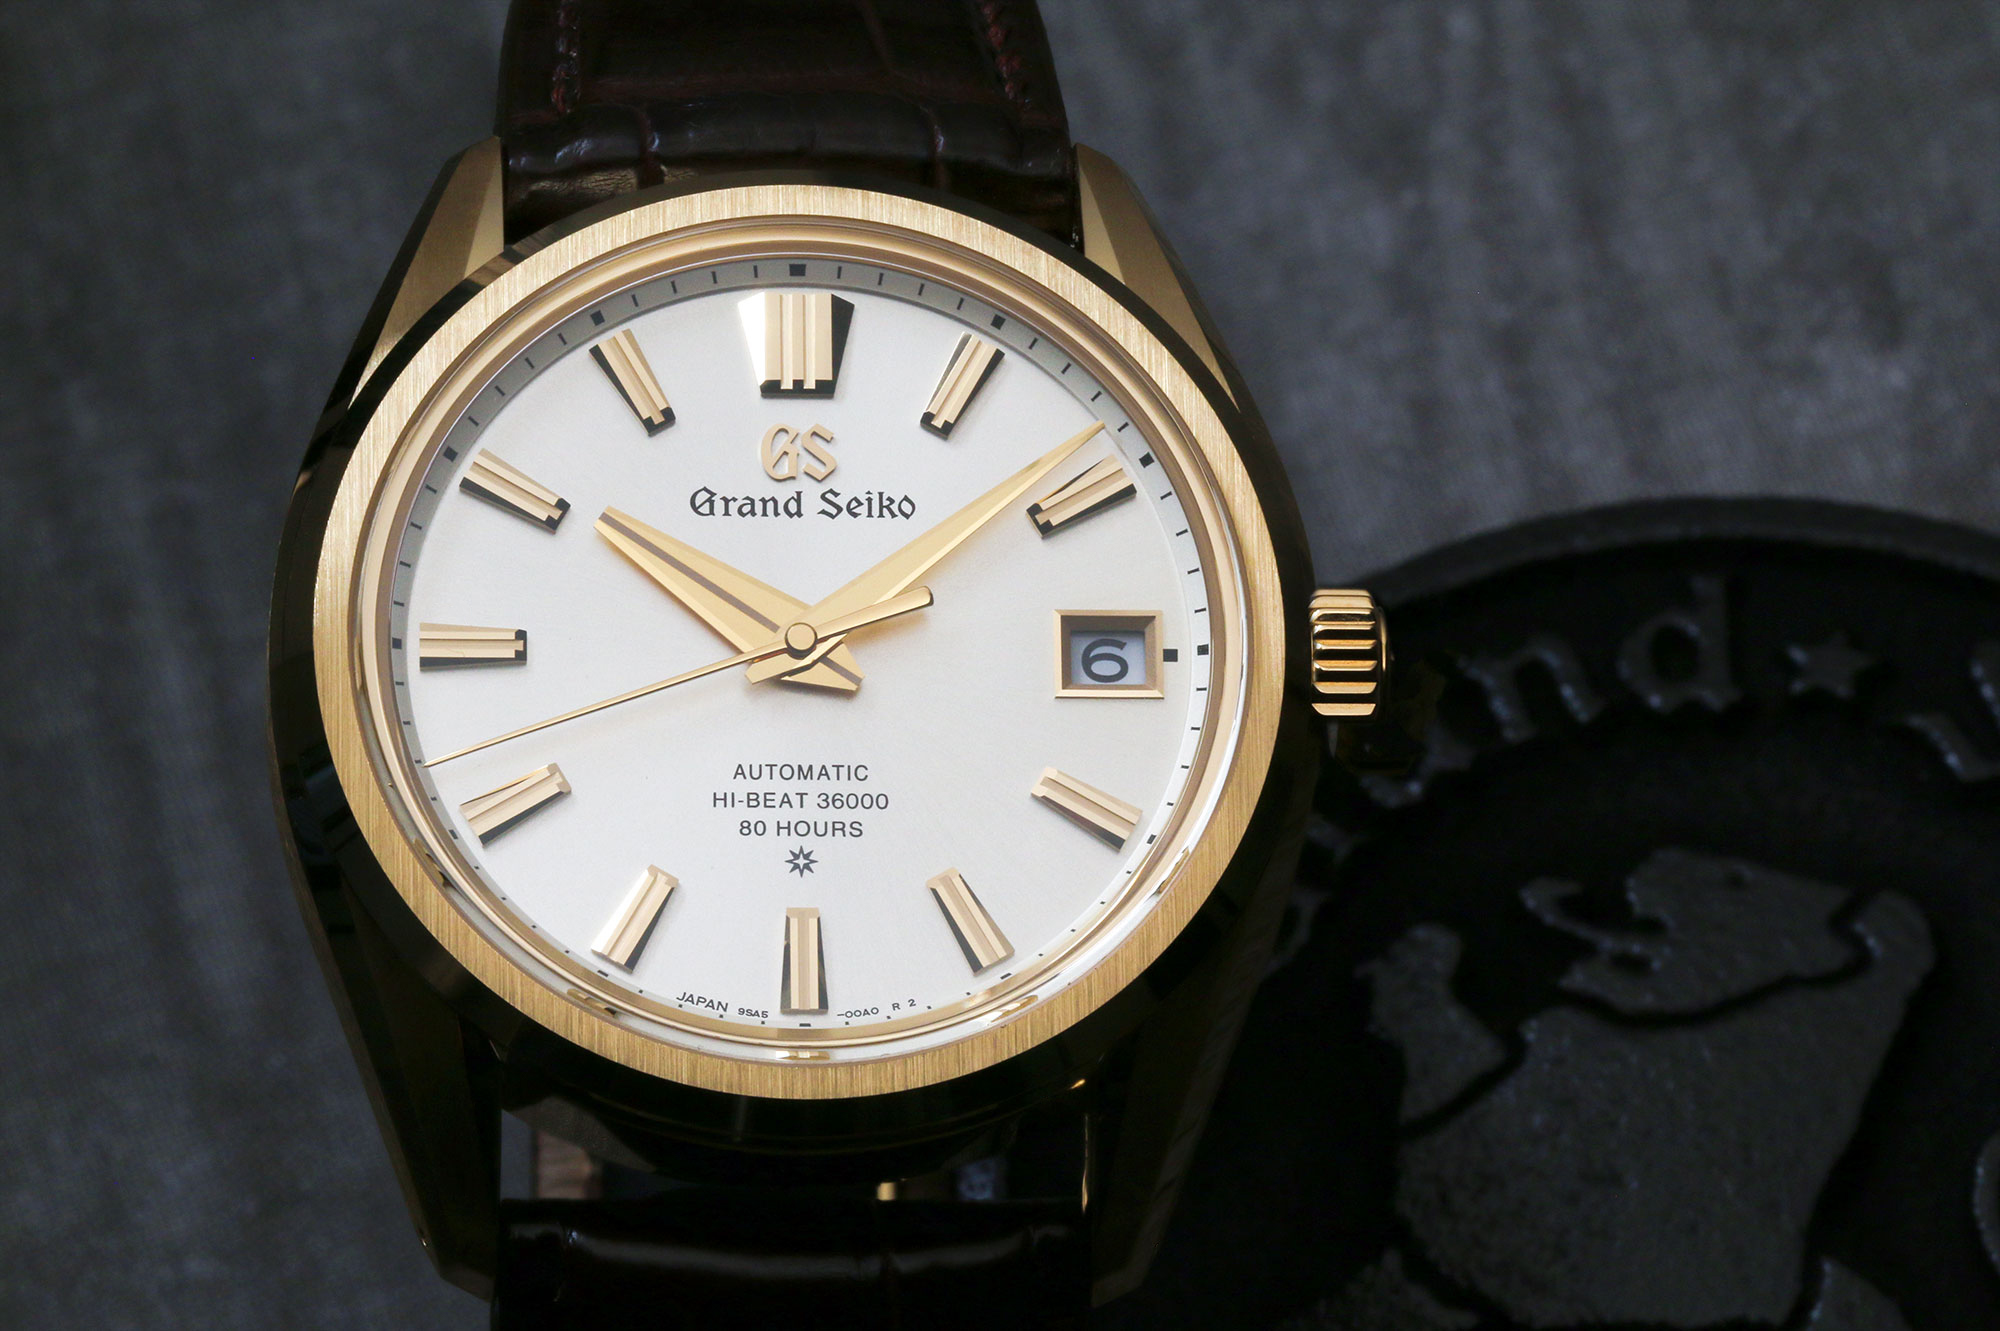 Grand Seiko SLGH002 with a gold case and light dial.